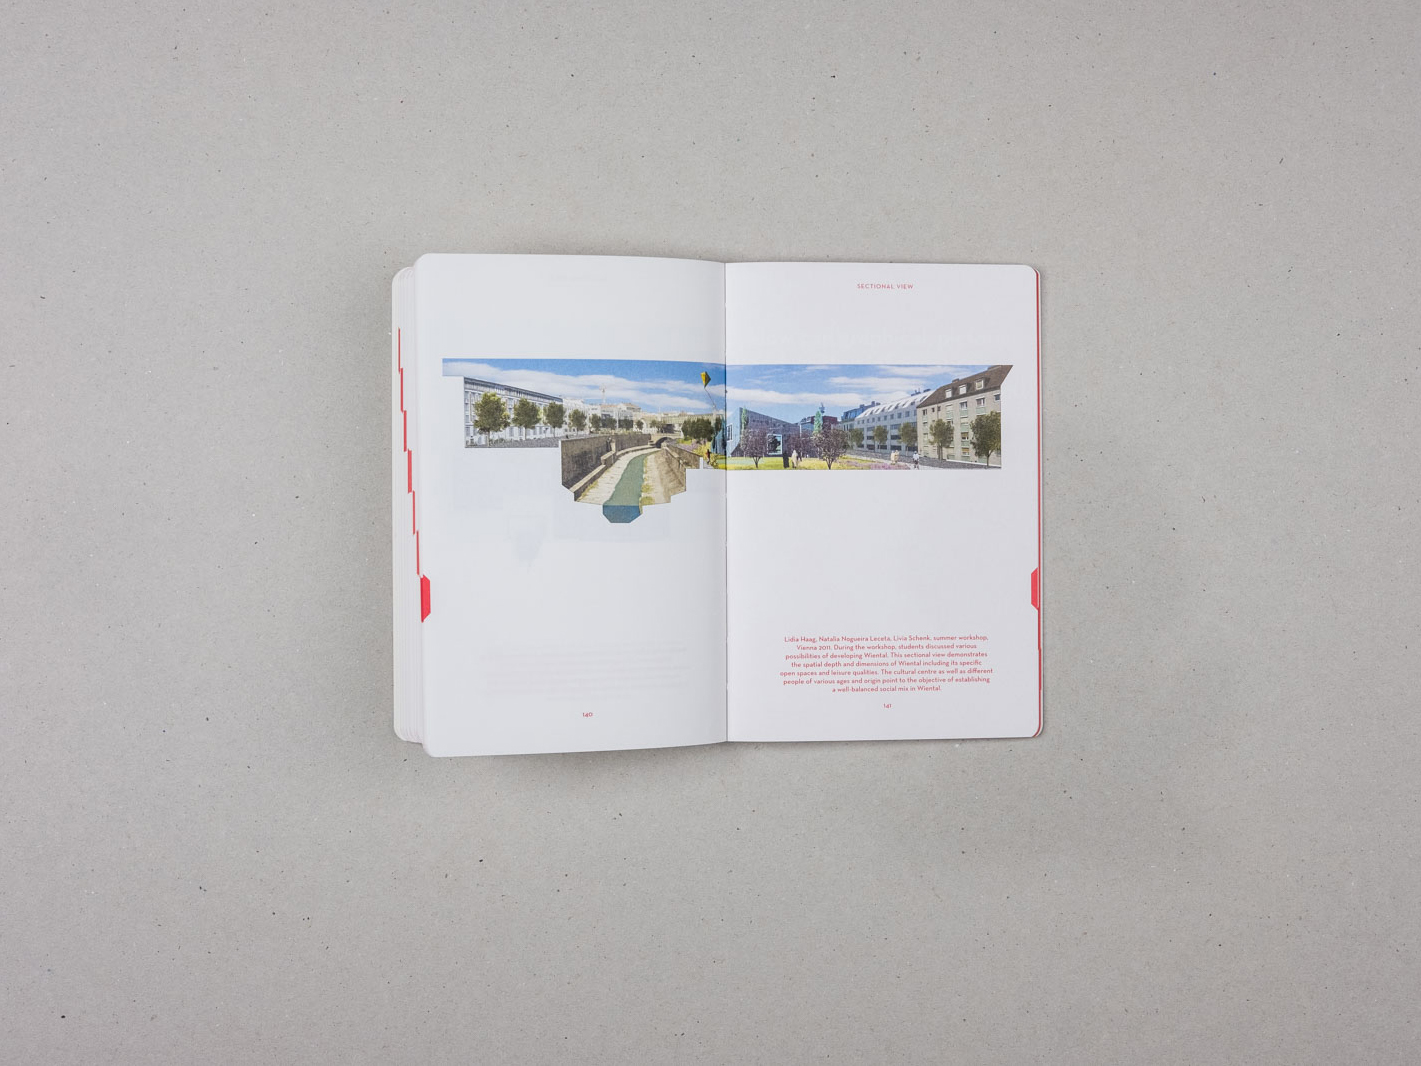 Handbook of Methods for Architecture and Urban Design - 10